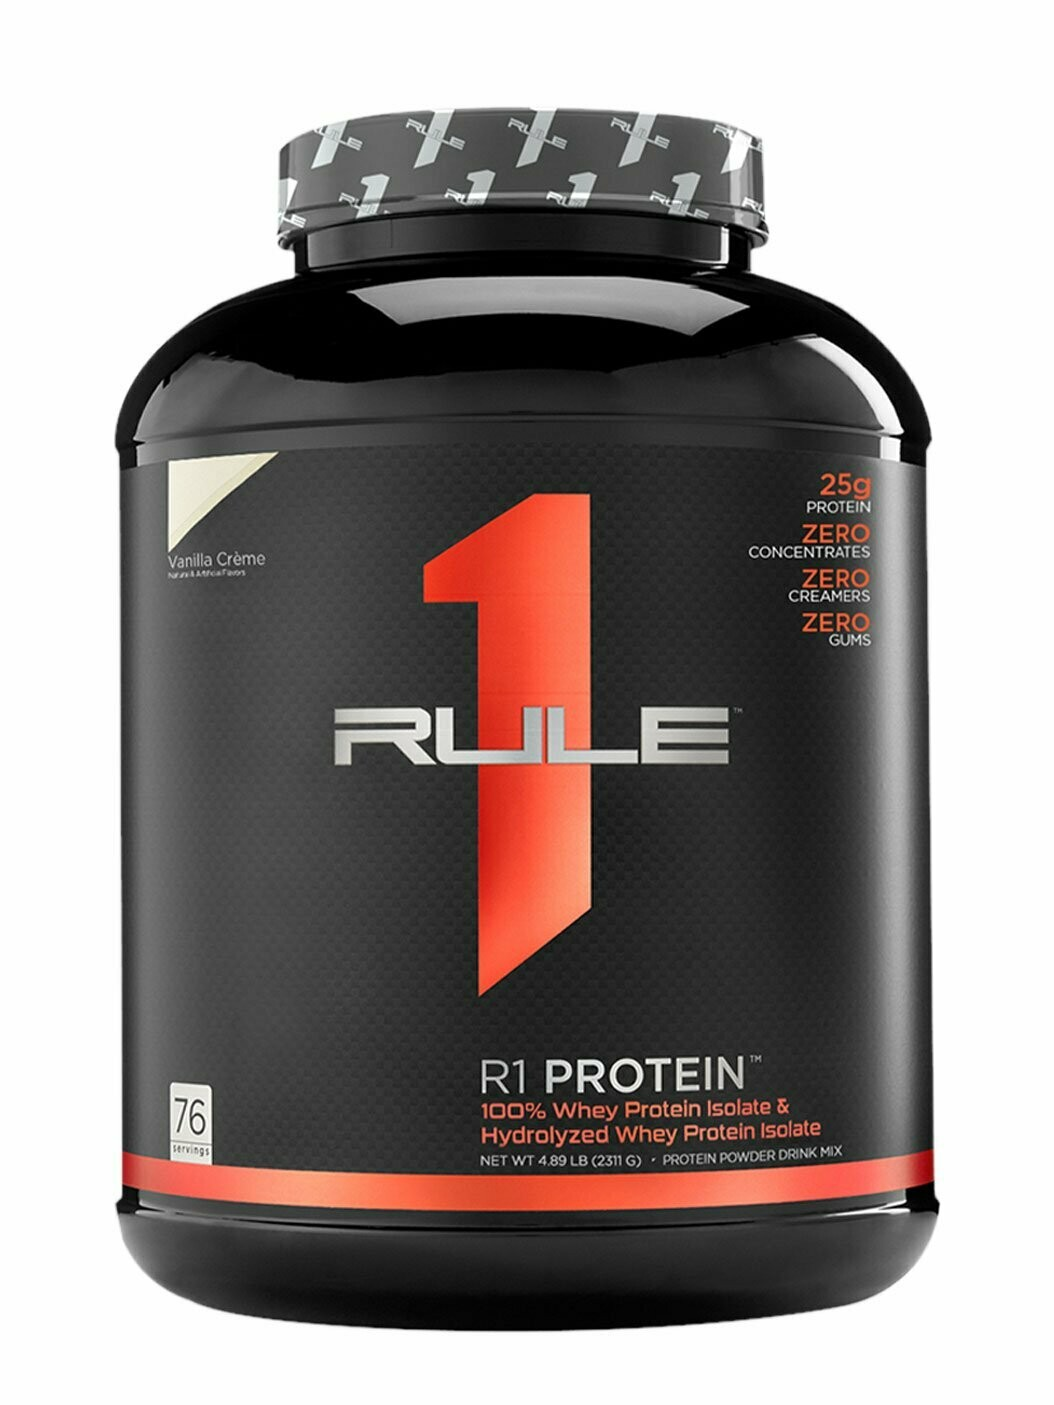 Rule 1 Protein Whey Isolate / Hydrolysate